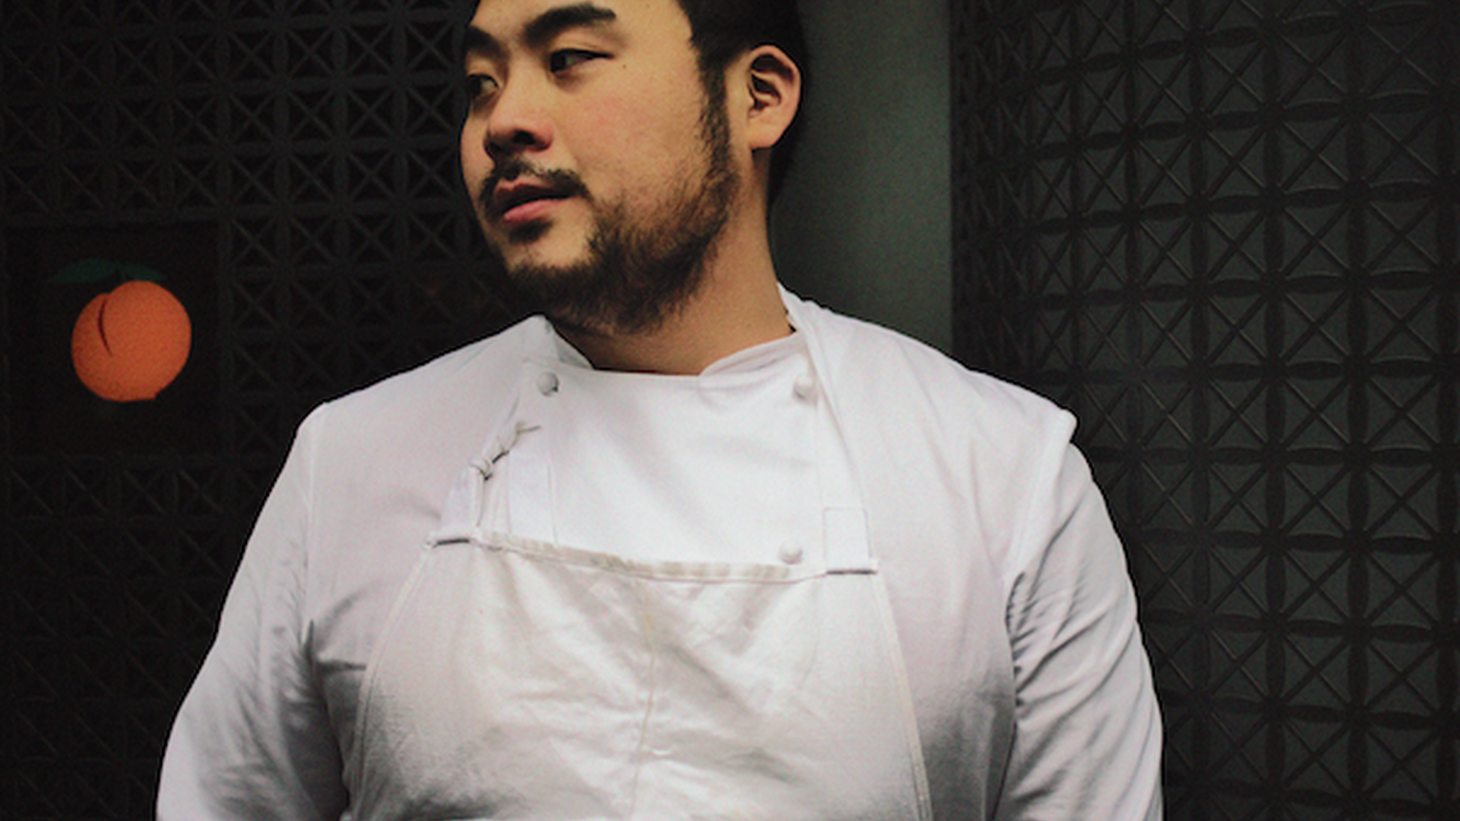 Admitting a prior history with David Chang, Jonathan Gold gives a blow-by-blow account of his meals at Majordomo, the Momofuku founder's first foray into Los Angeles.